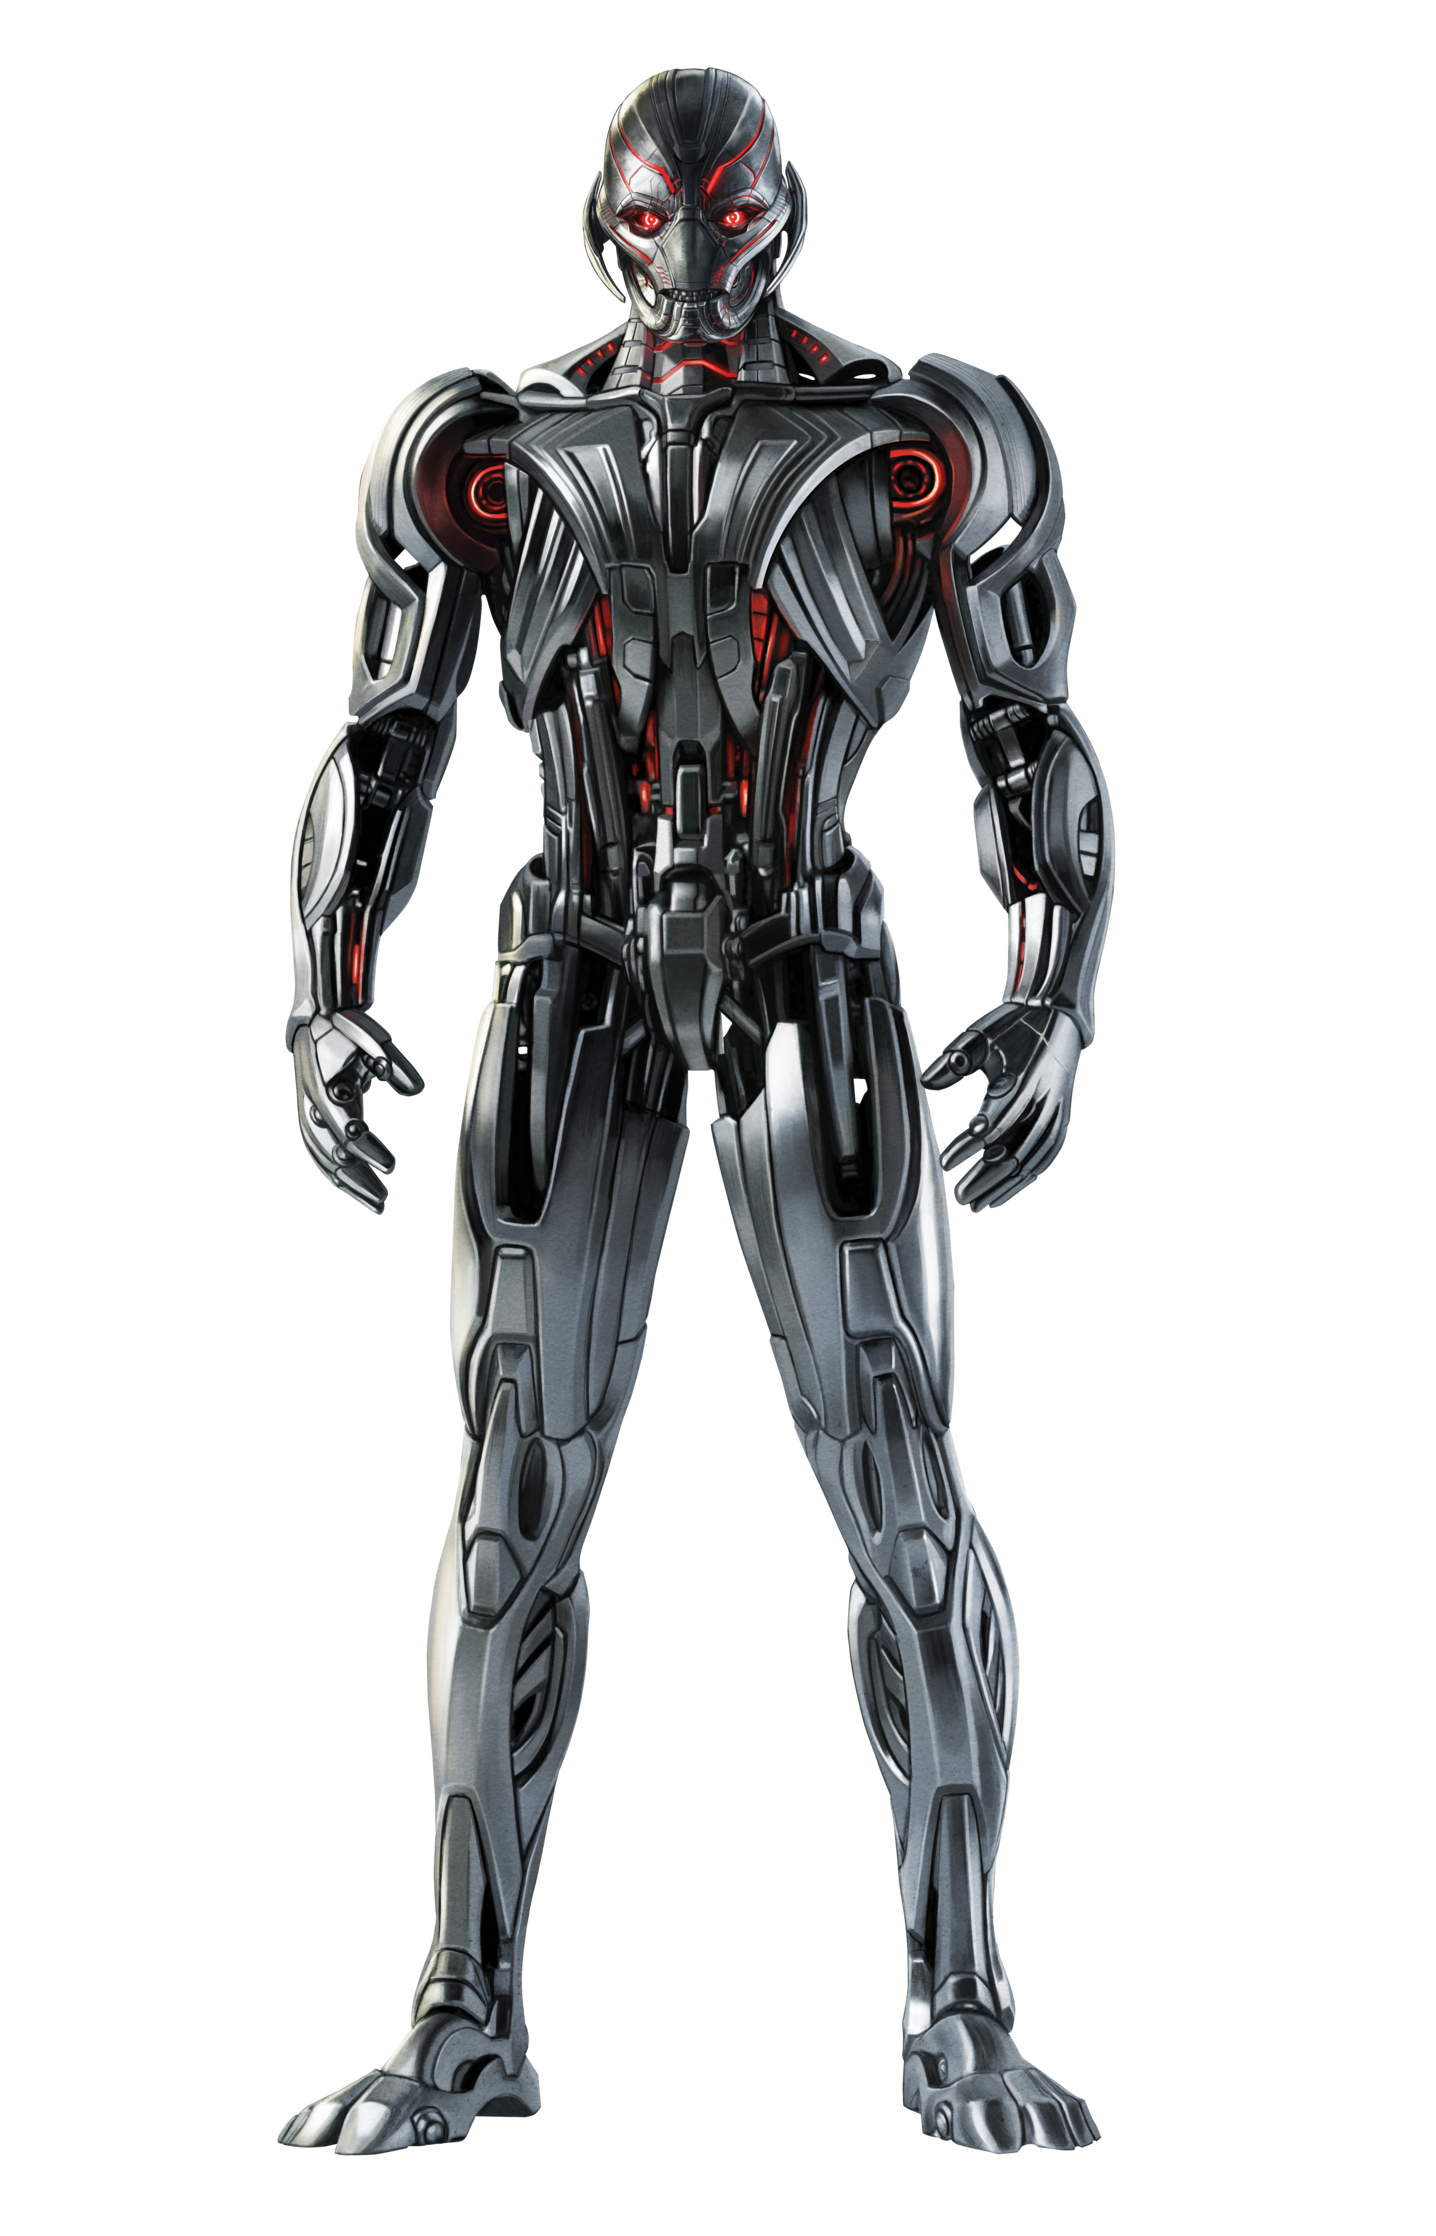 Download Ultron PNG Image.